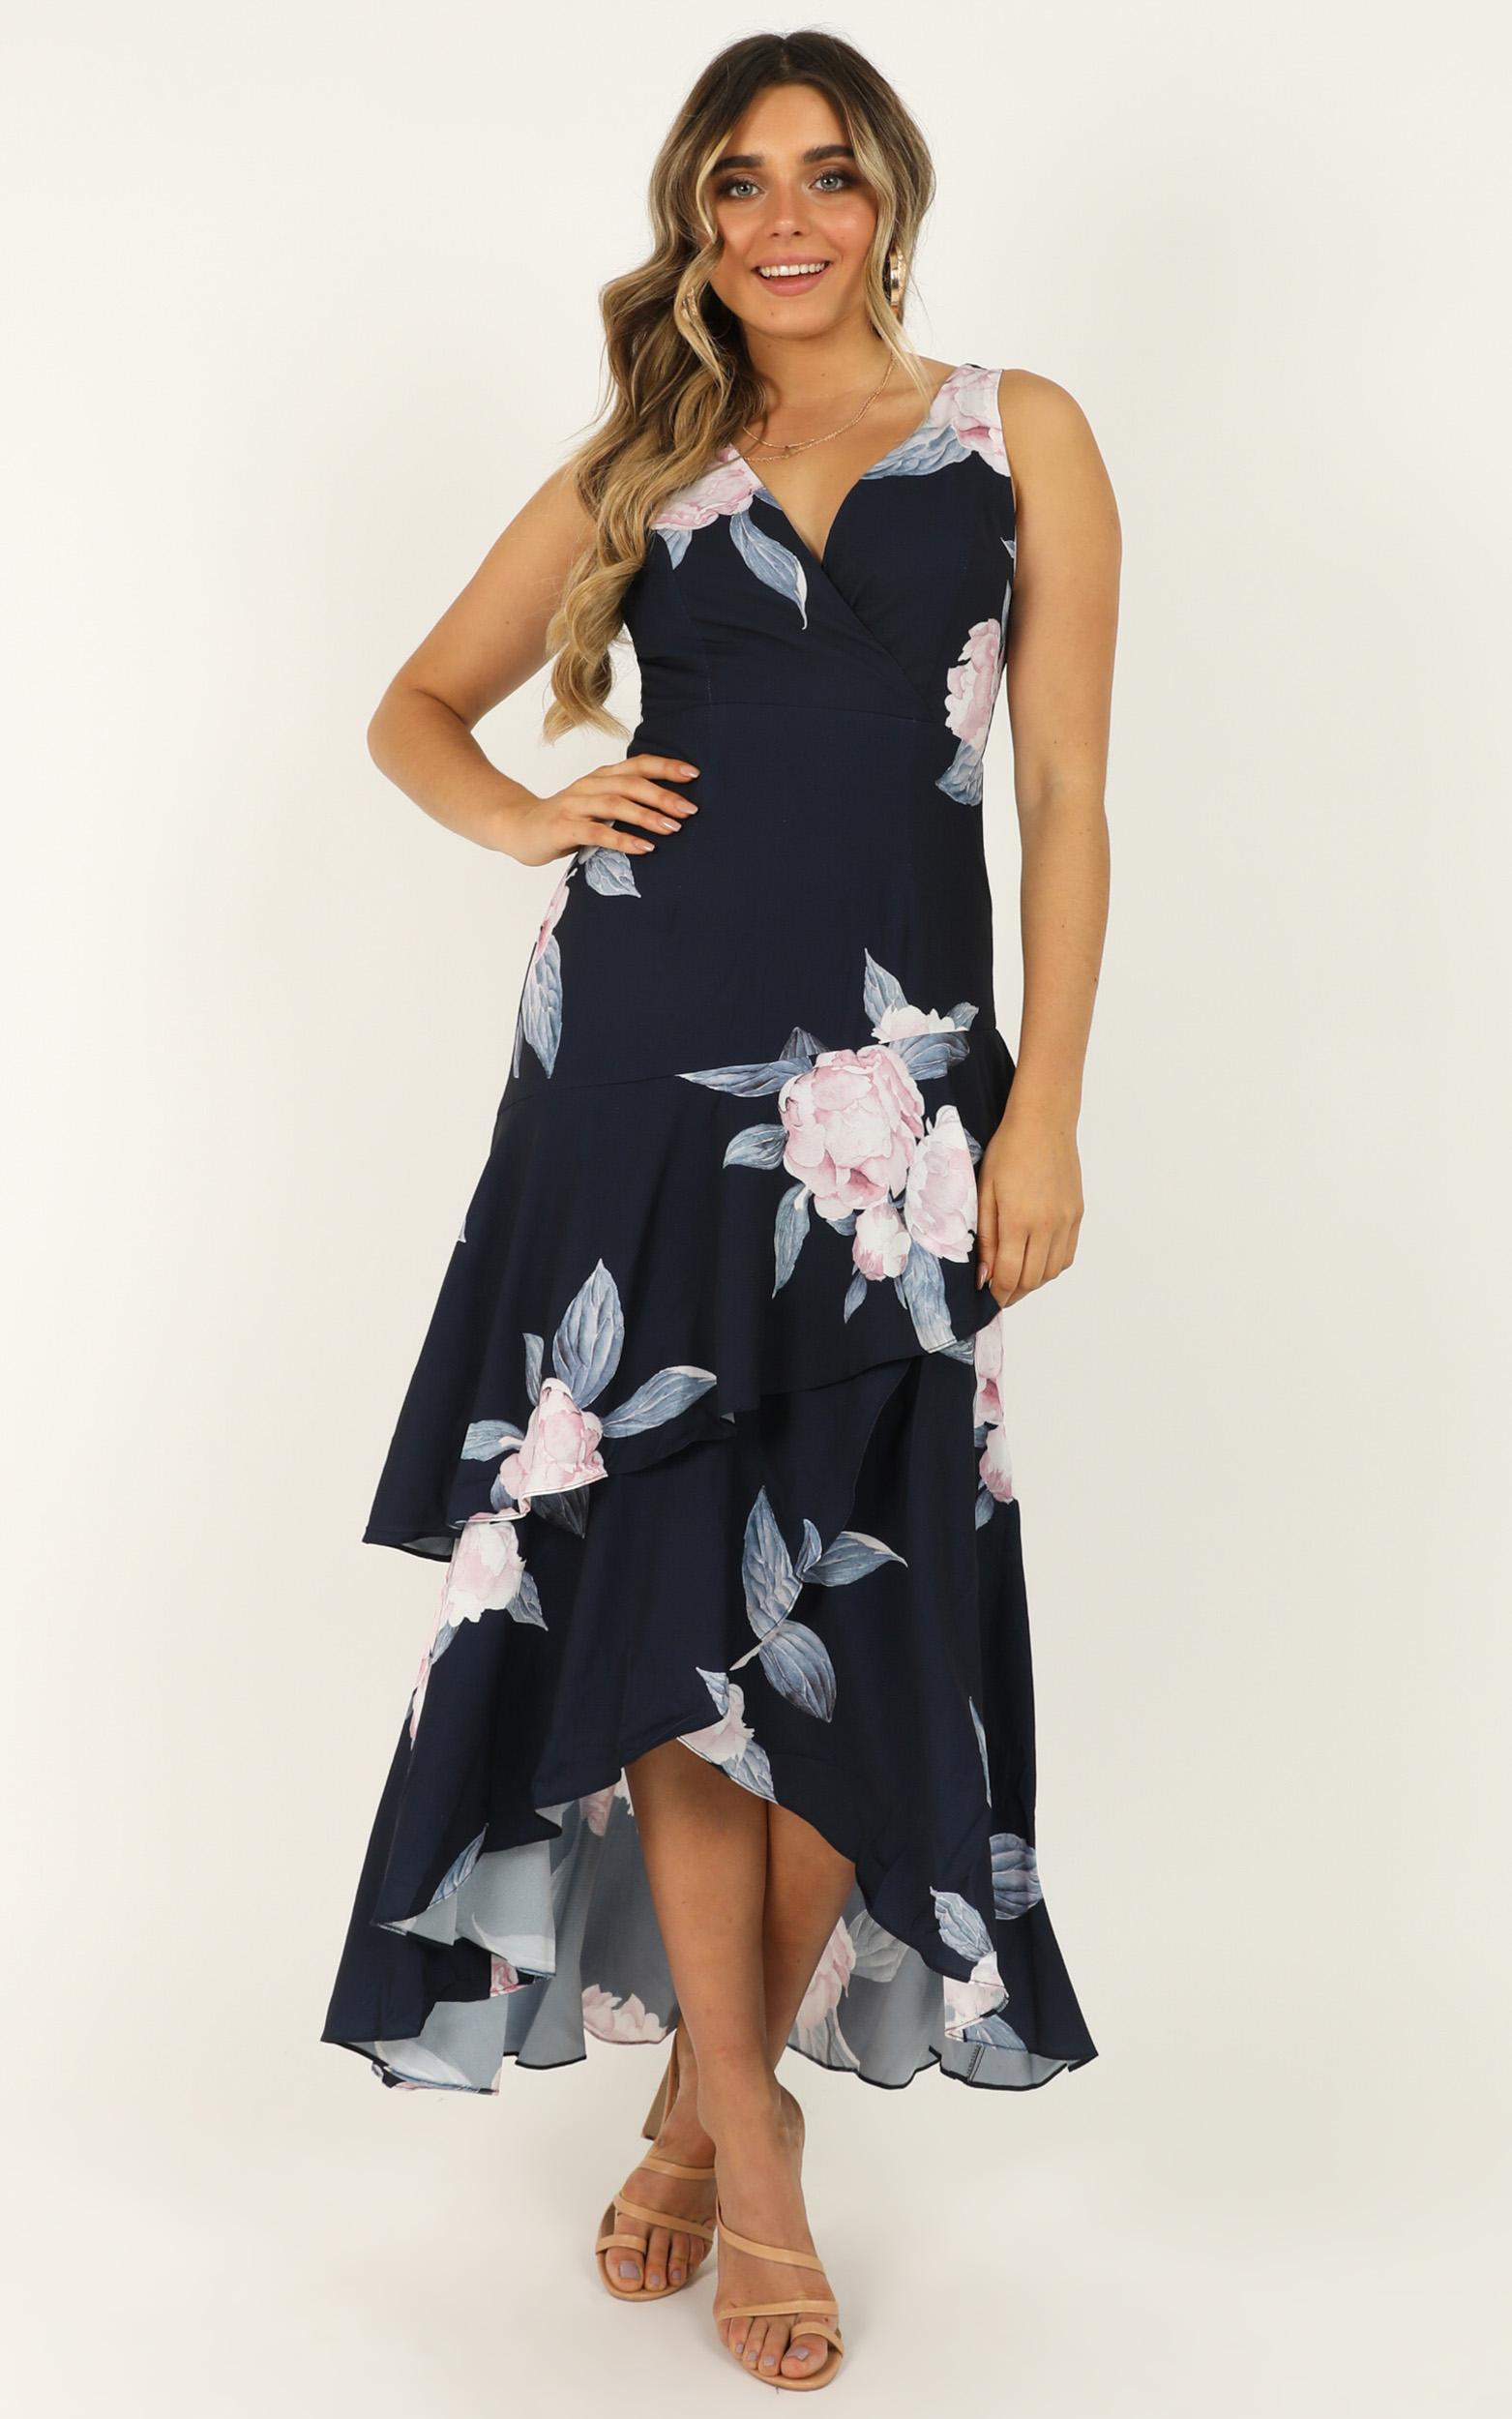 Big Investment dress in navy floral - 16 (XXL), Navy, hi-res image number null